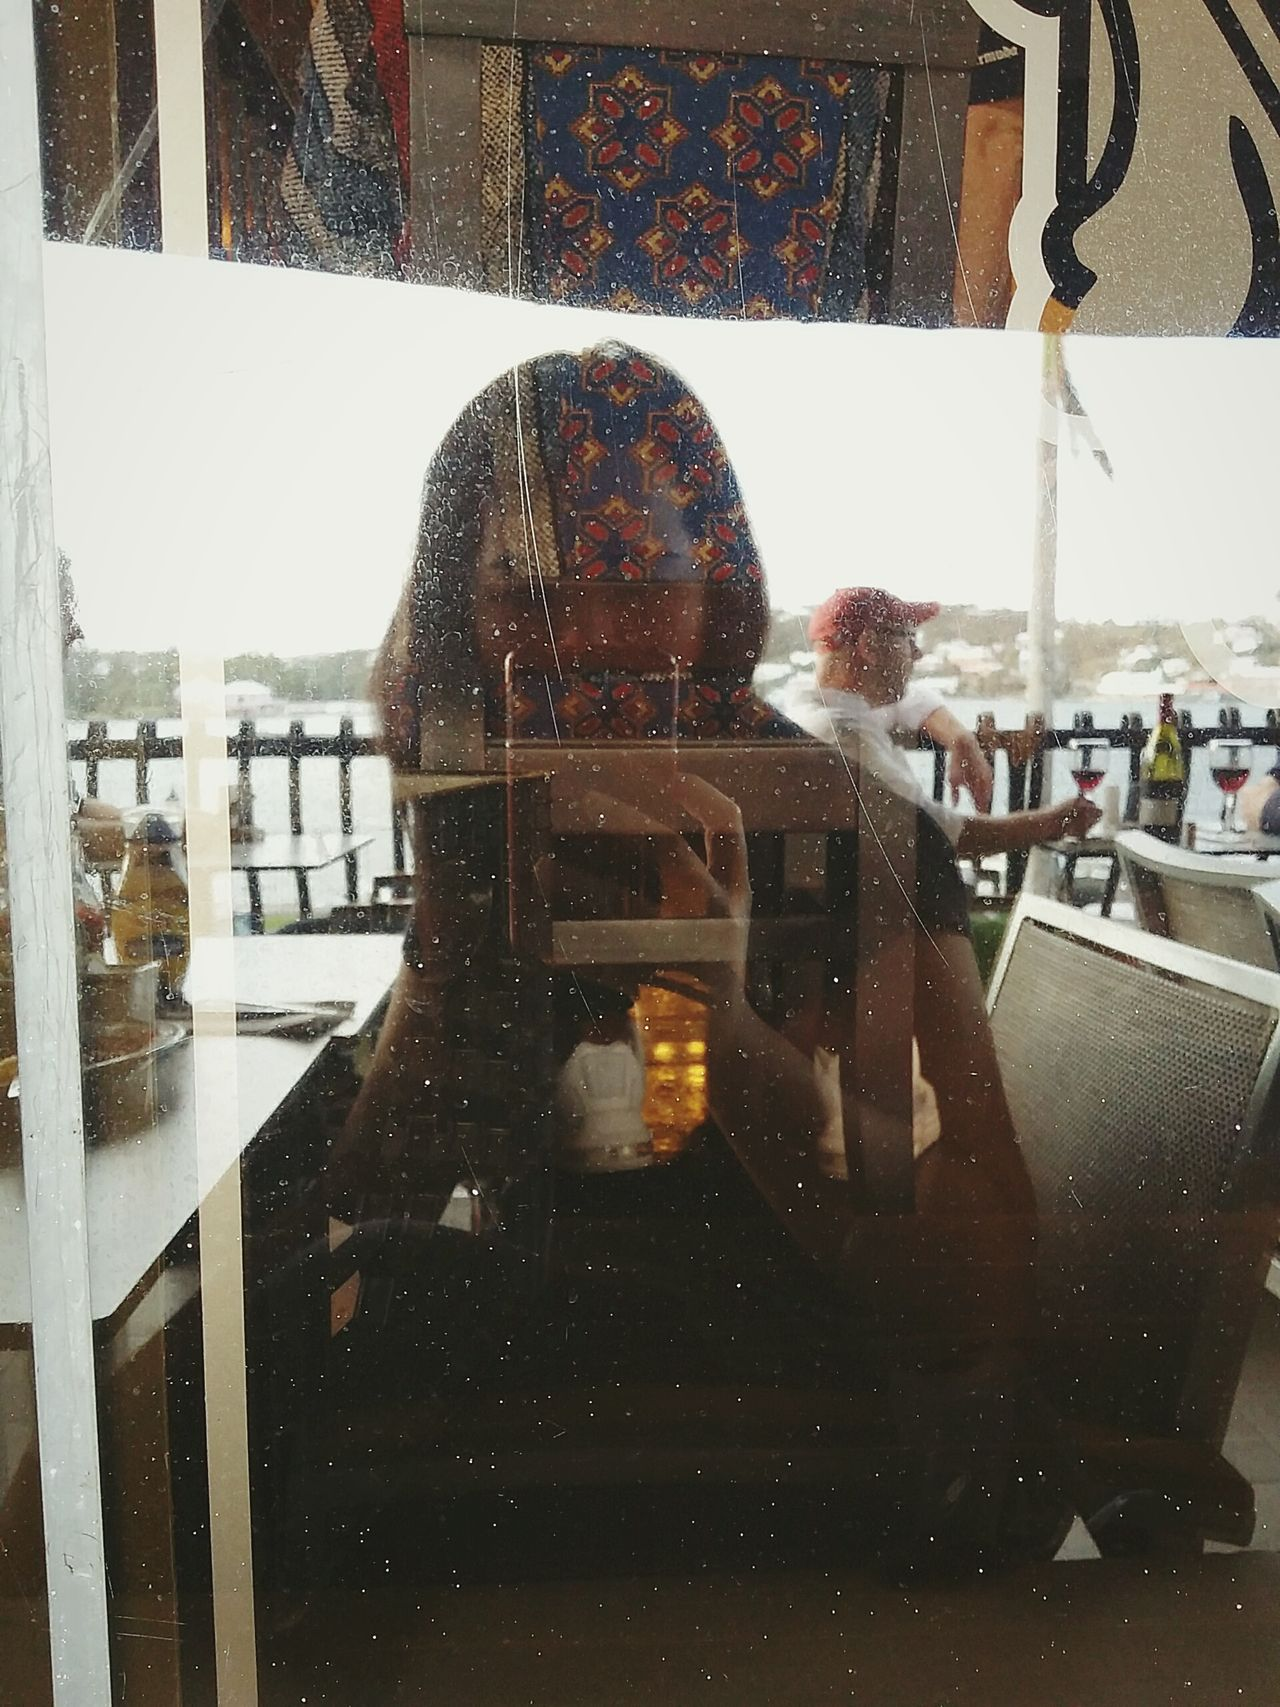 Reflection Window Indoors  People One Person EyeEm Streetphotography EyeEm Best Shots Travel Destinations Leisure Activity Sea Beauty In Nature Cloud - Sky Travel Adventure Street Road Reflection Window Indoors  People Responsibility One Person Day Adult